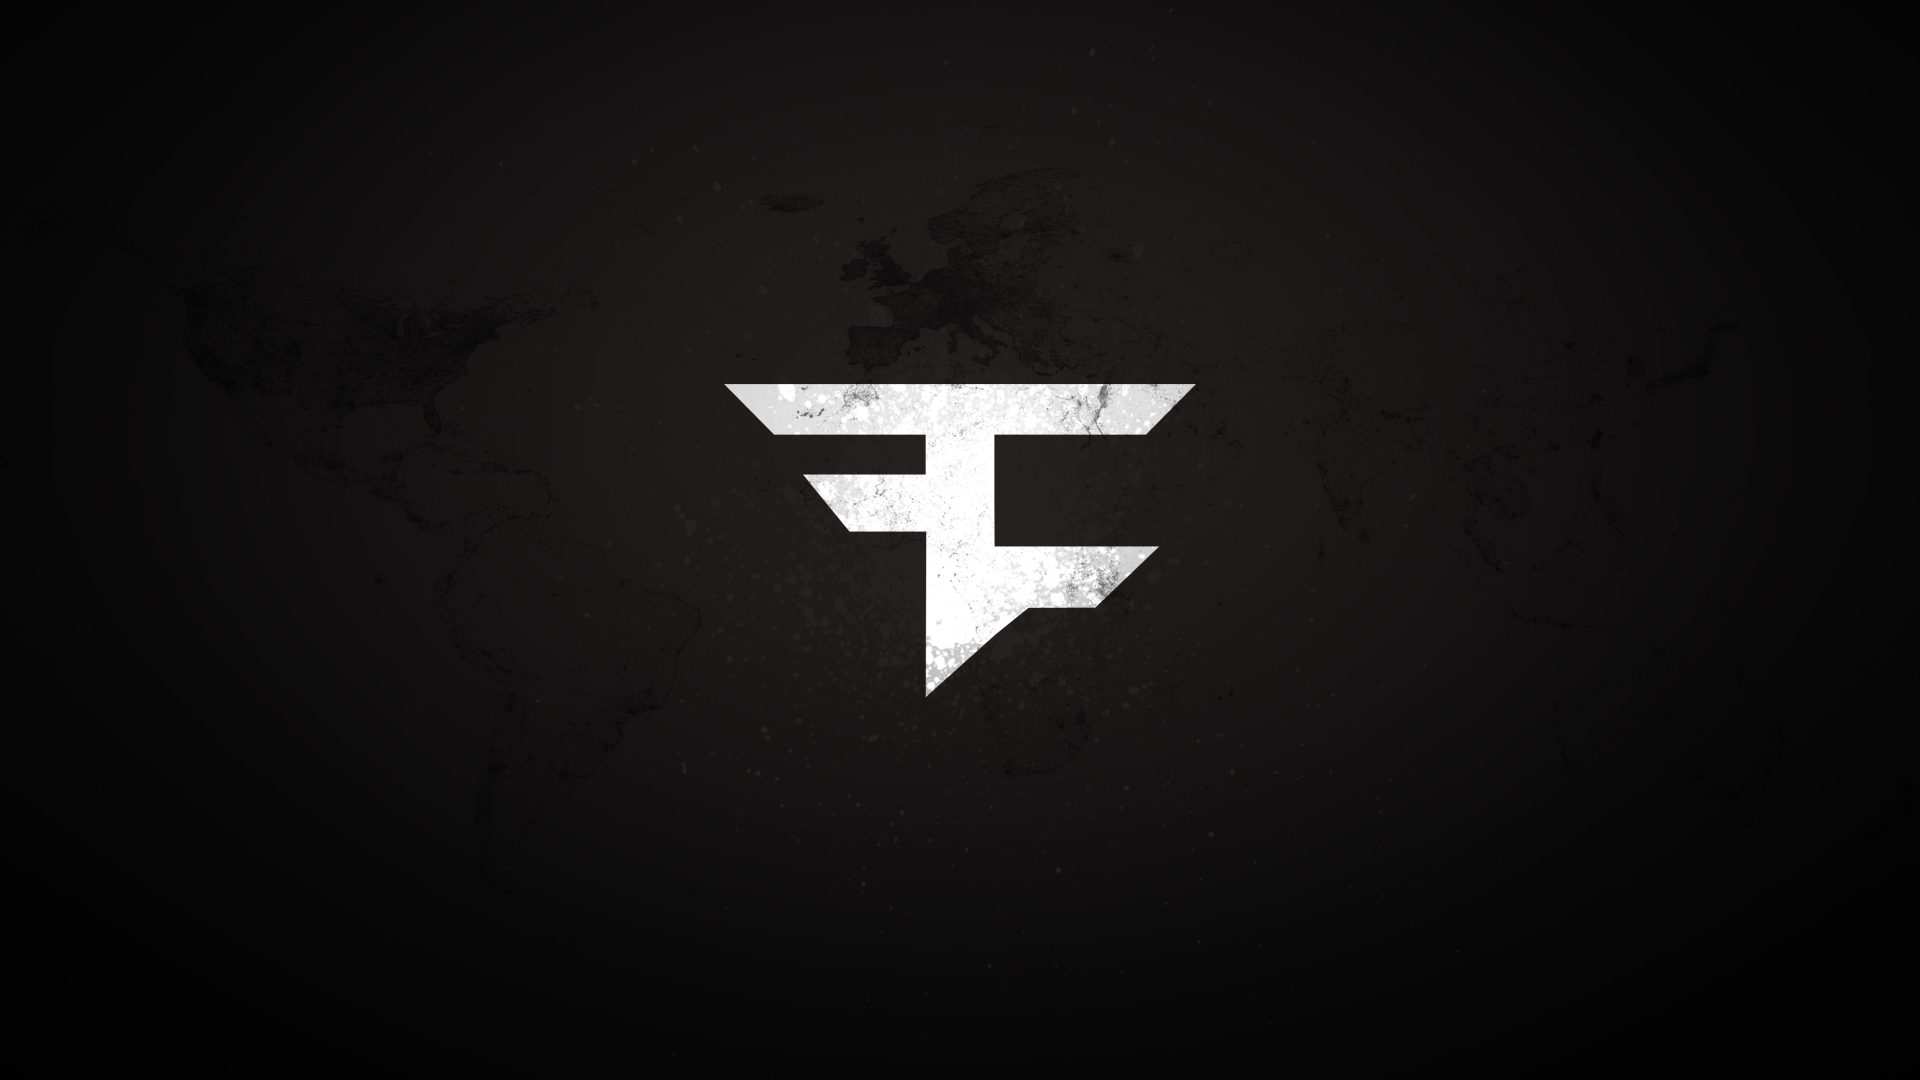 Faze Clan Is A Team Of Gamers With Over 2 Million Subscribers On